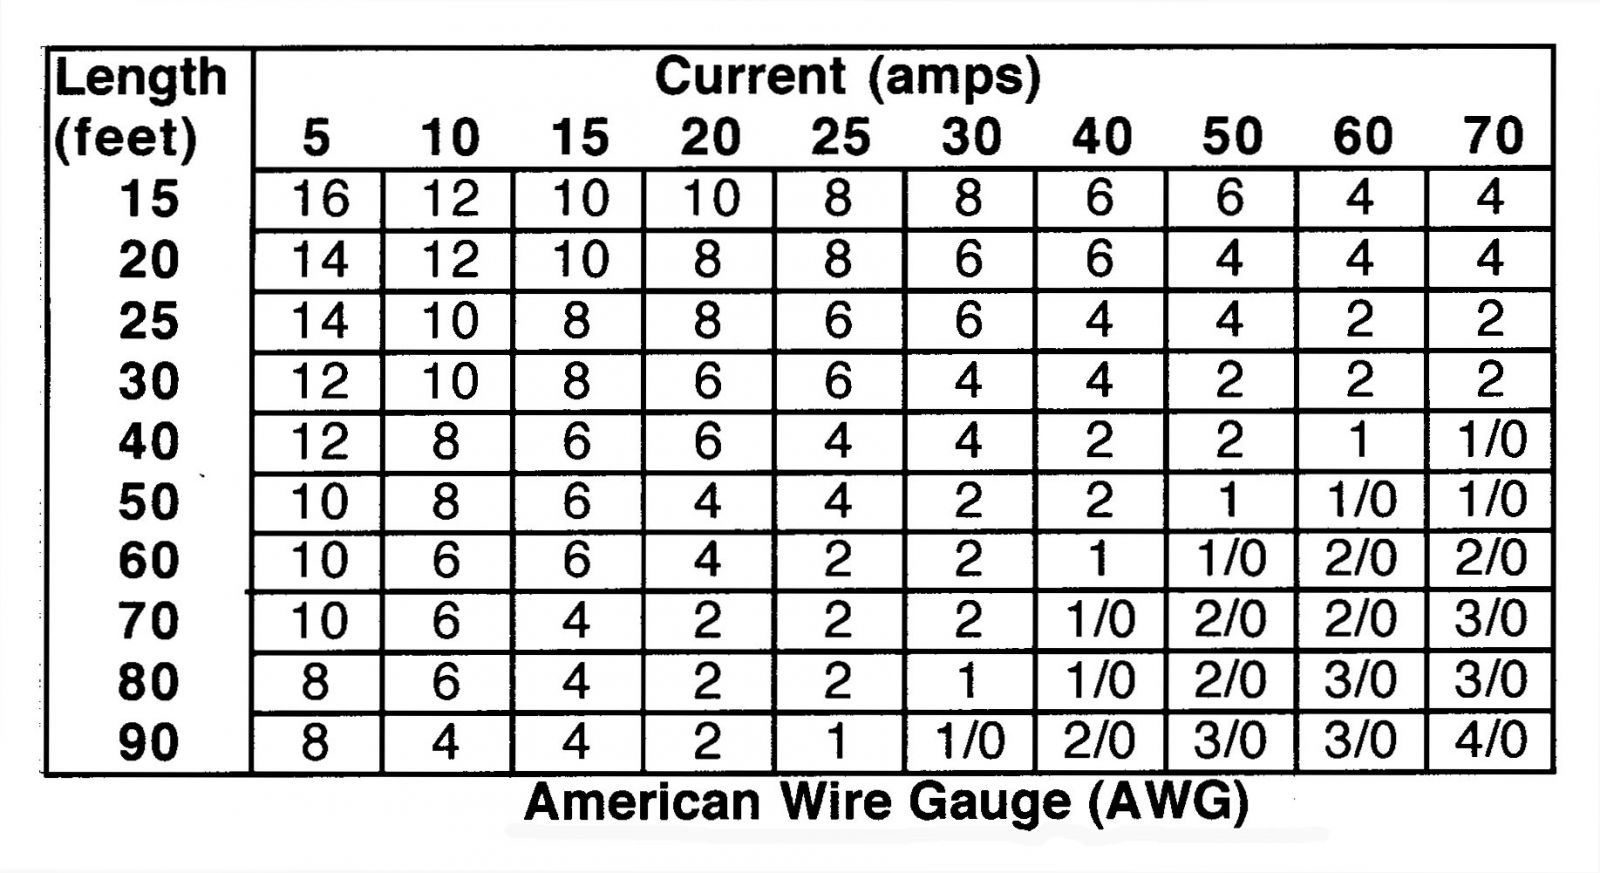 Electrical Wire Amp Rating Chart : What awg for watts